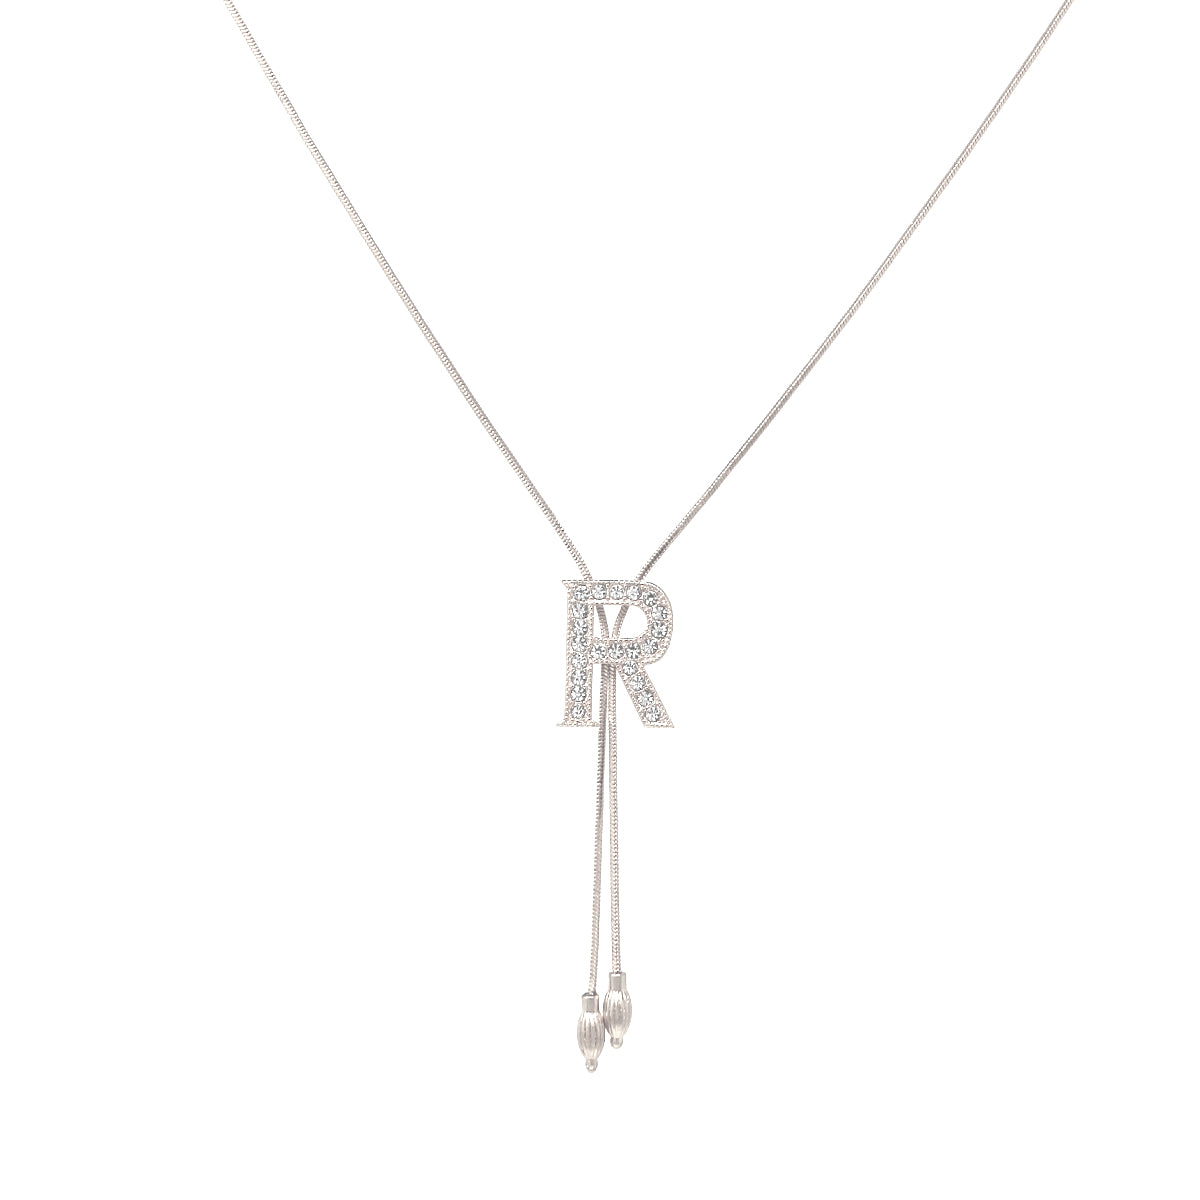 R Glass Paved Sliding Initial Pendant Necklace